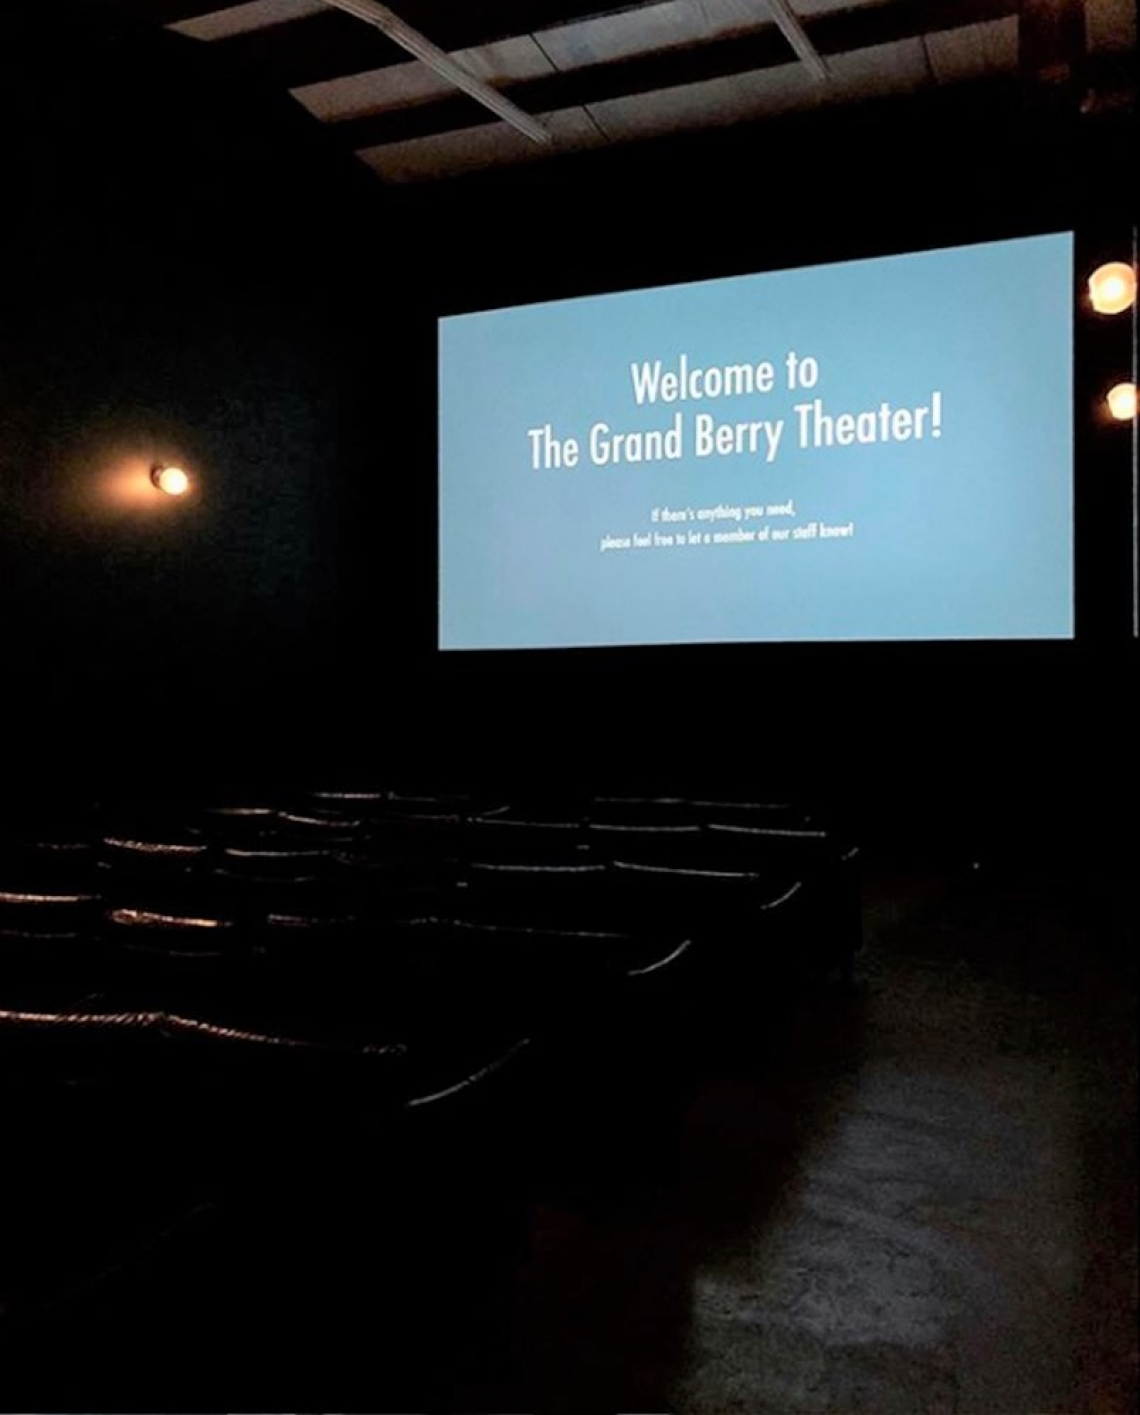 The Grand Berry Theater, Jimmy Sweeney, interior